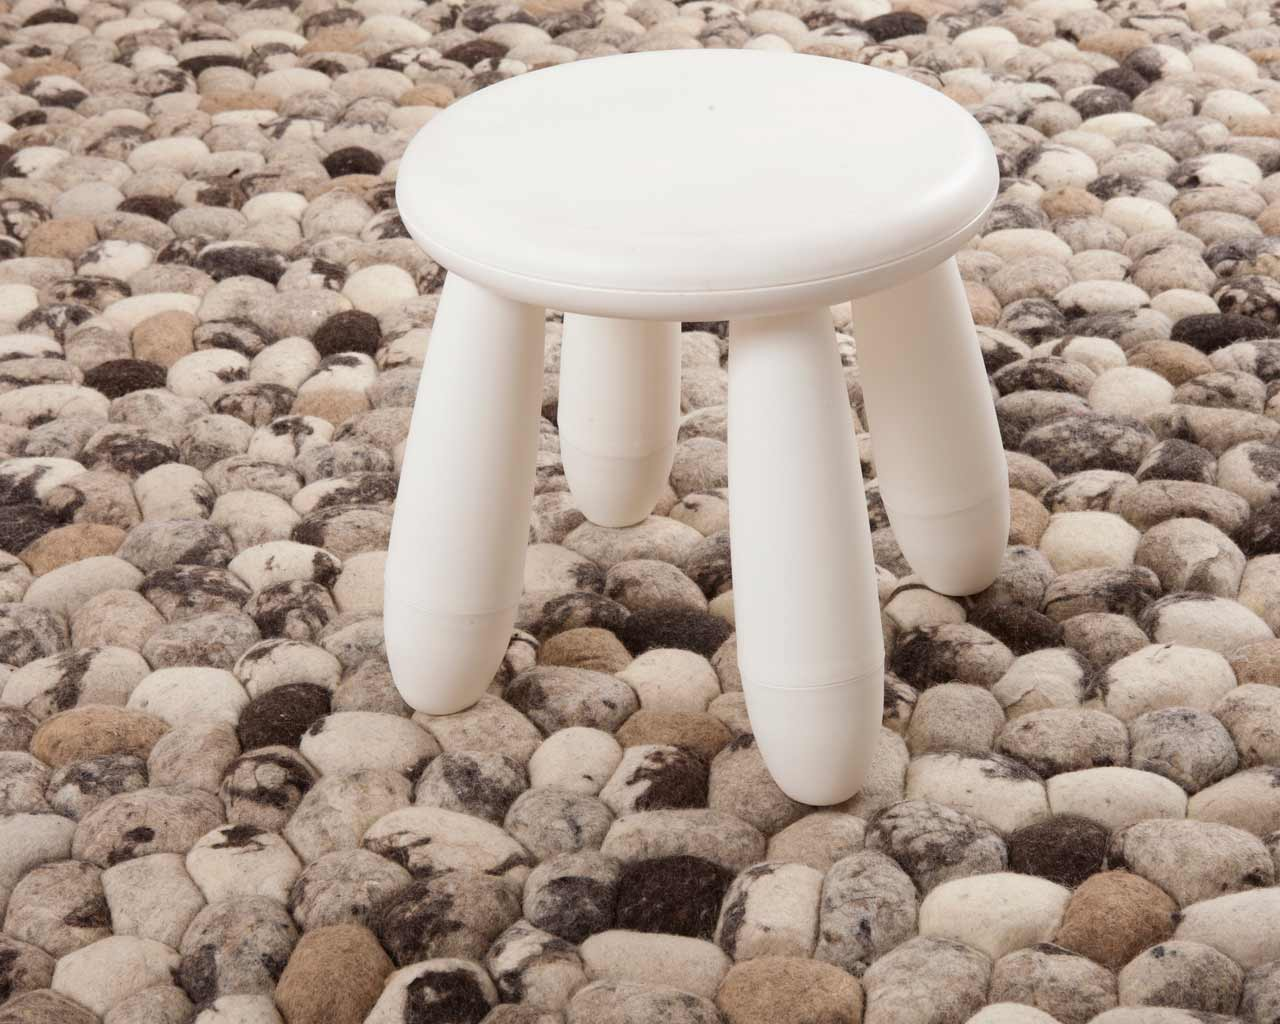 stool stones carpet soft texture